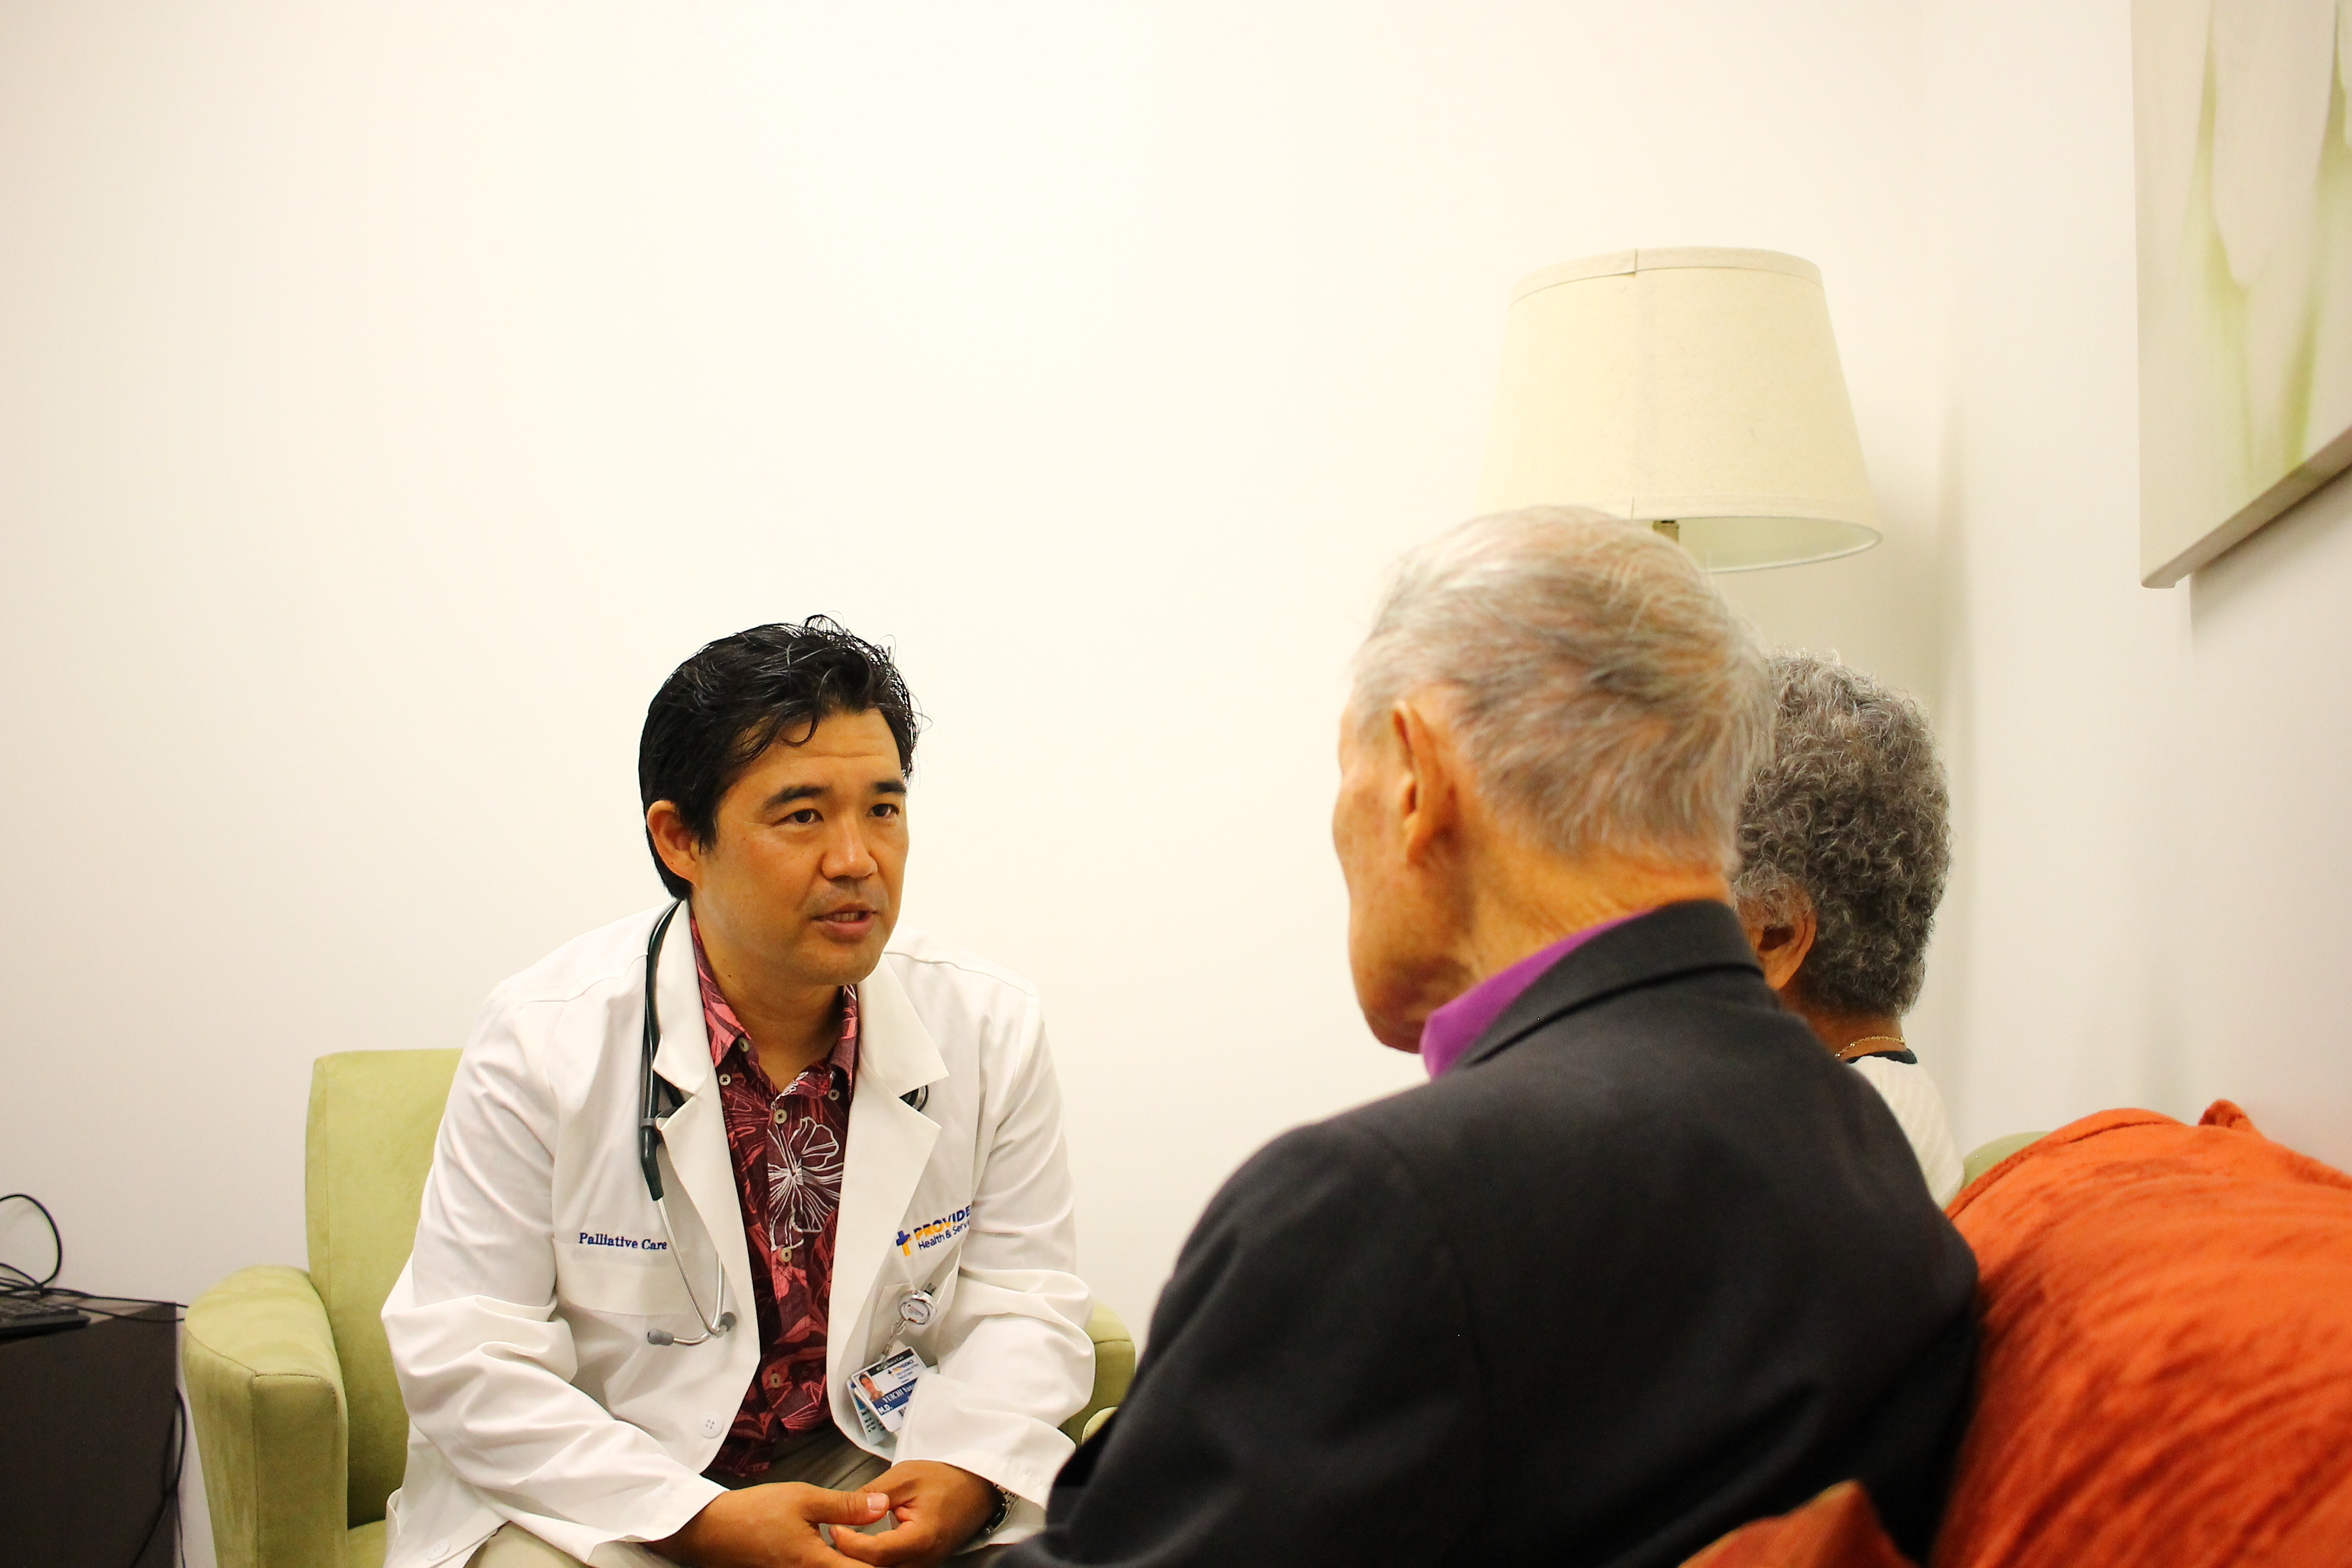 Medical professional speaking to two adults